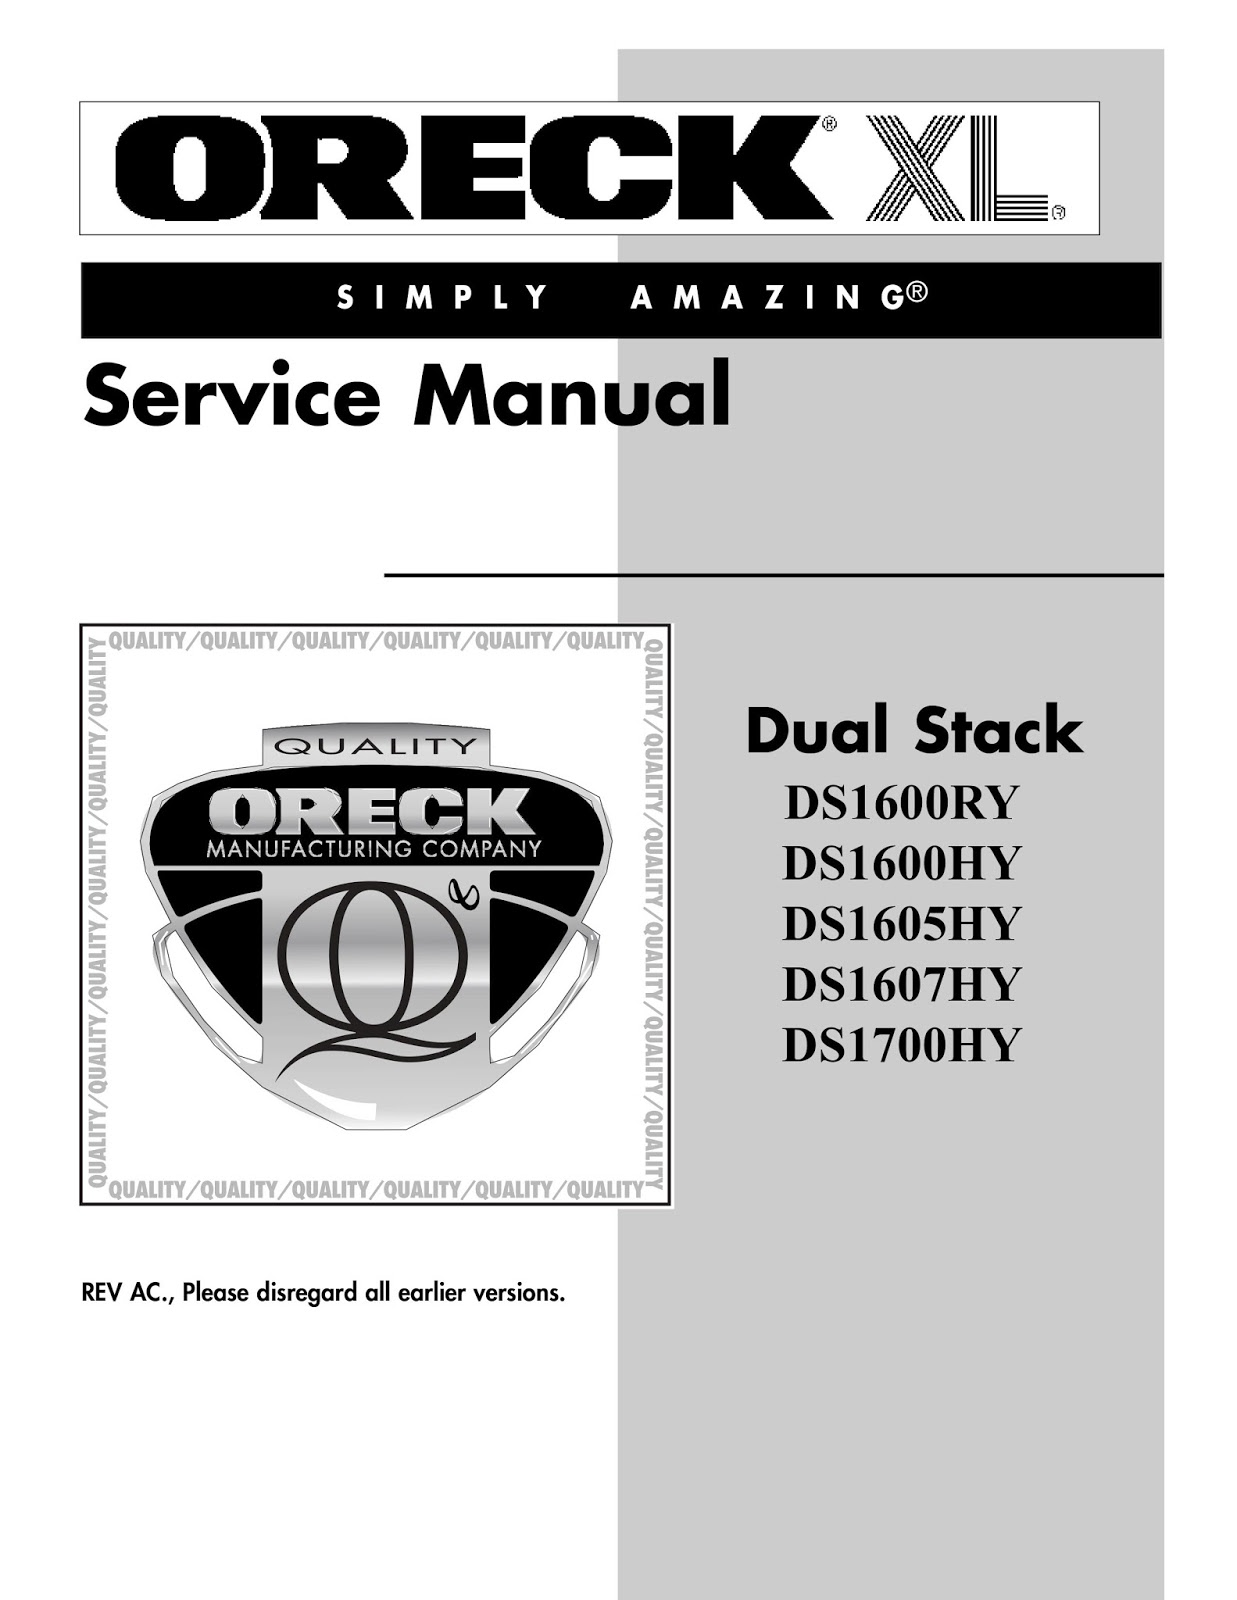 the potterings of a vacuum cleaner collector oreck dual stack this is a service manual parts diagram for the oreck dual stack cleaner a machine i have never actually seen before but it looks like this image